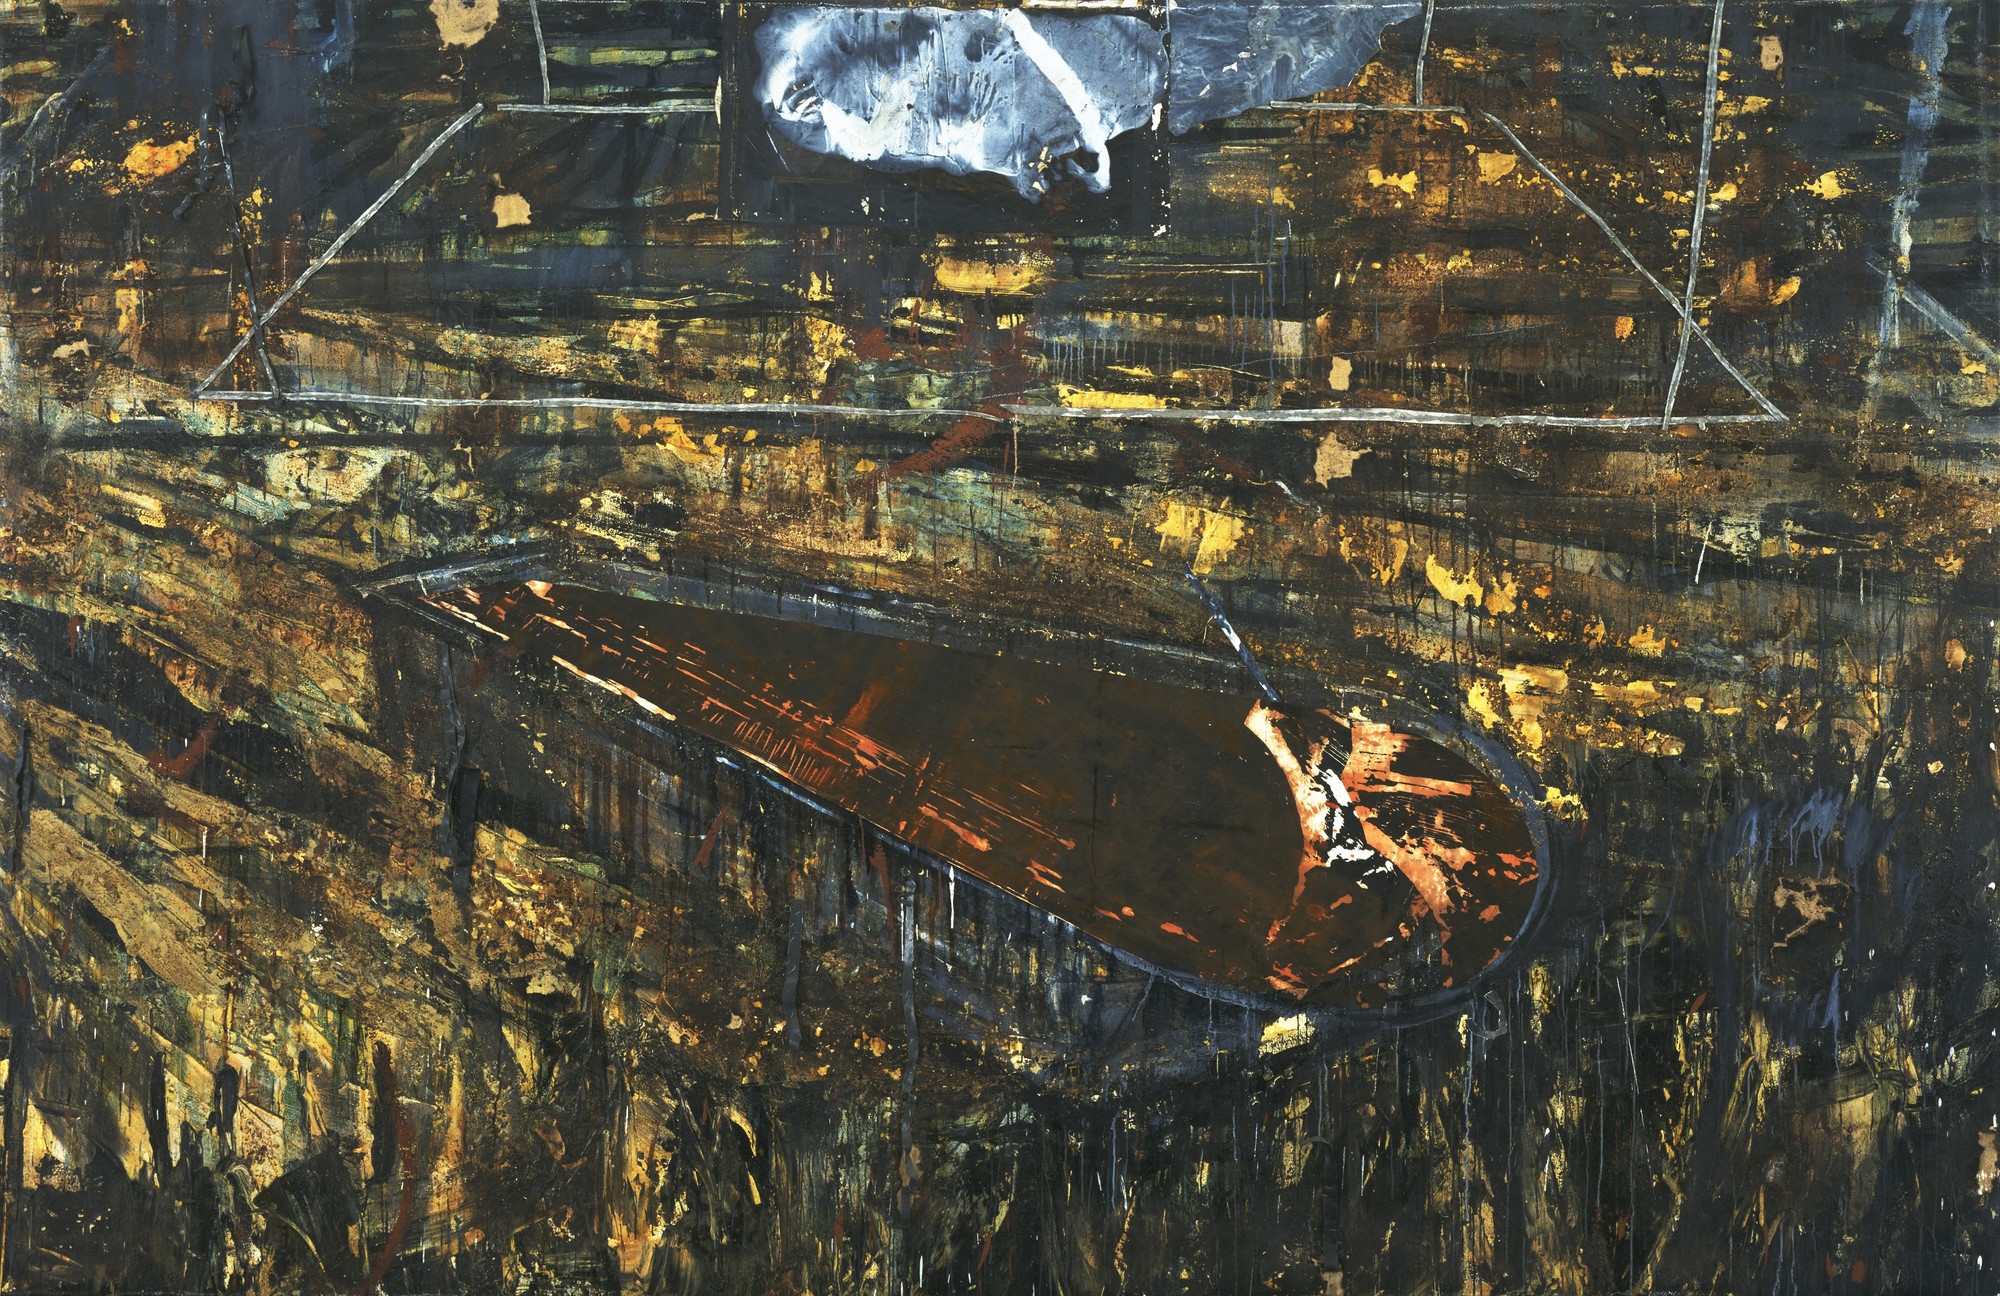 Anselm Kiefer. The Red Sea. 1984-85 | MoMA